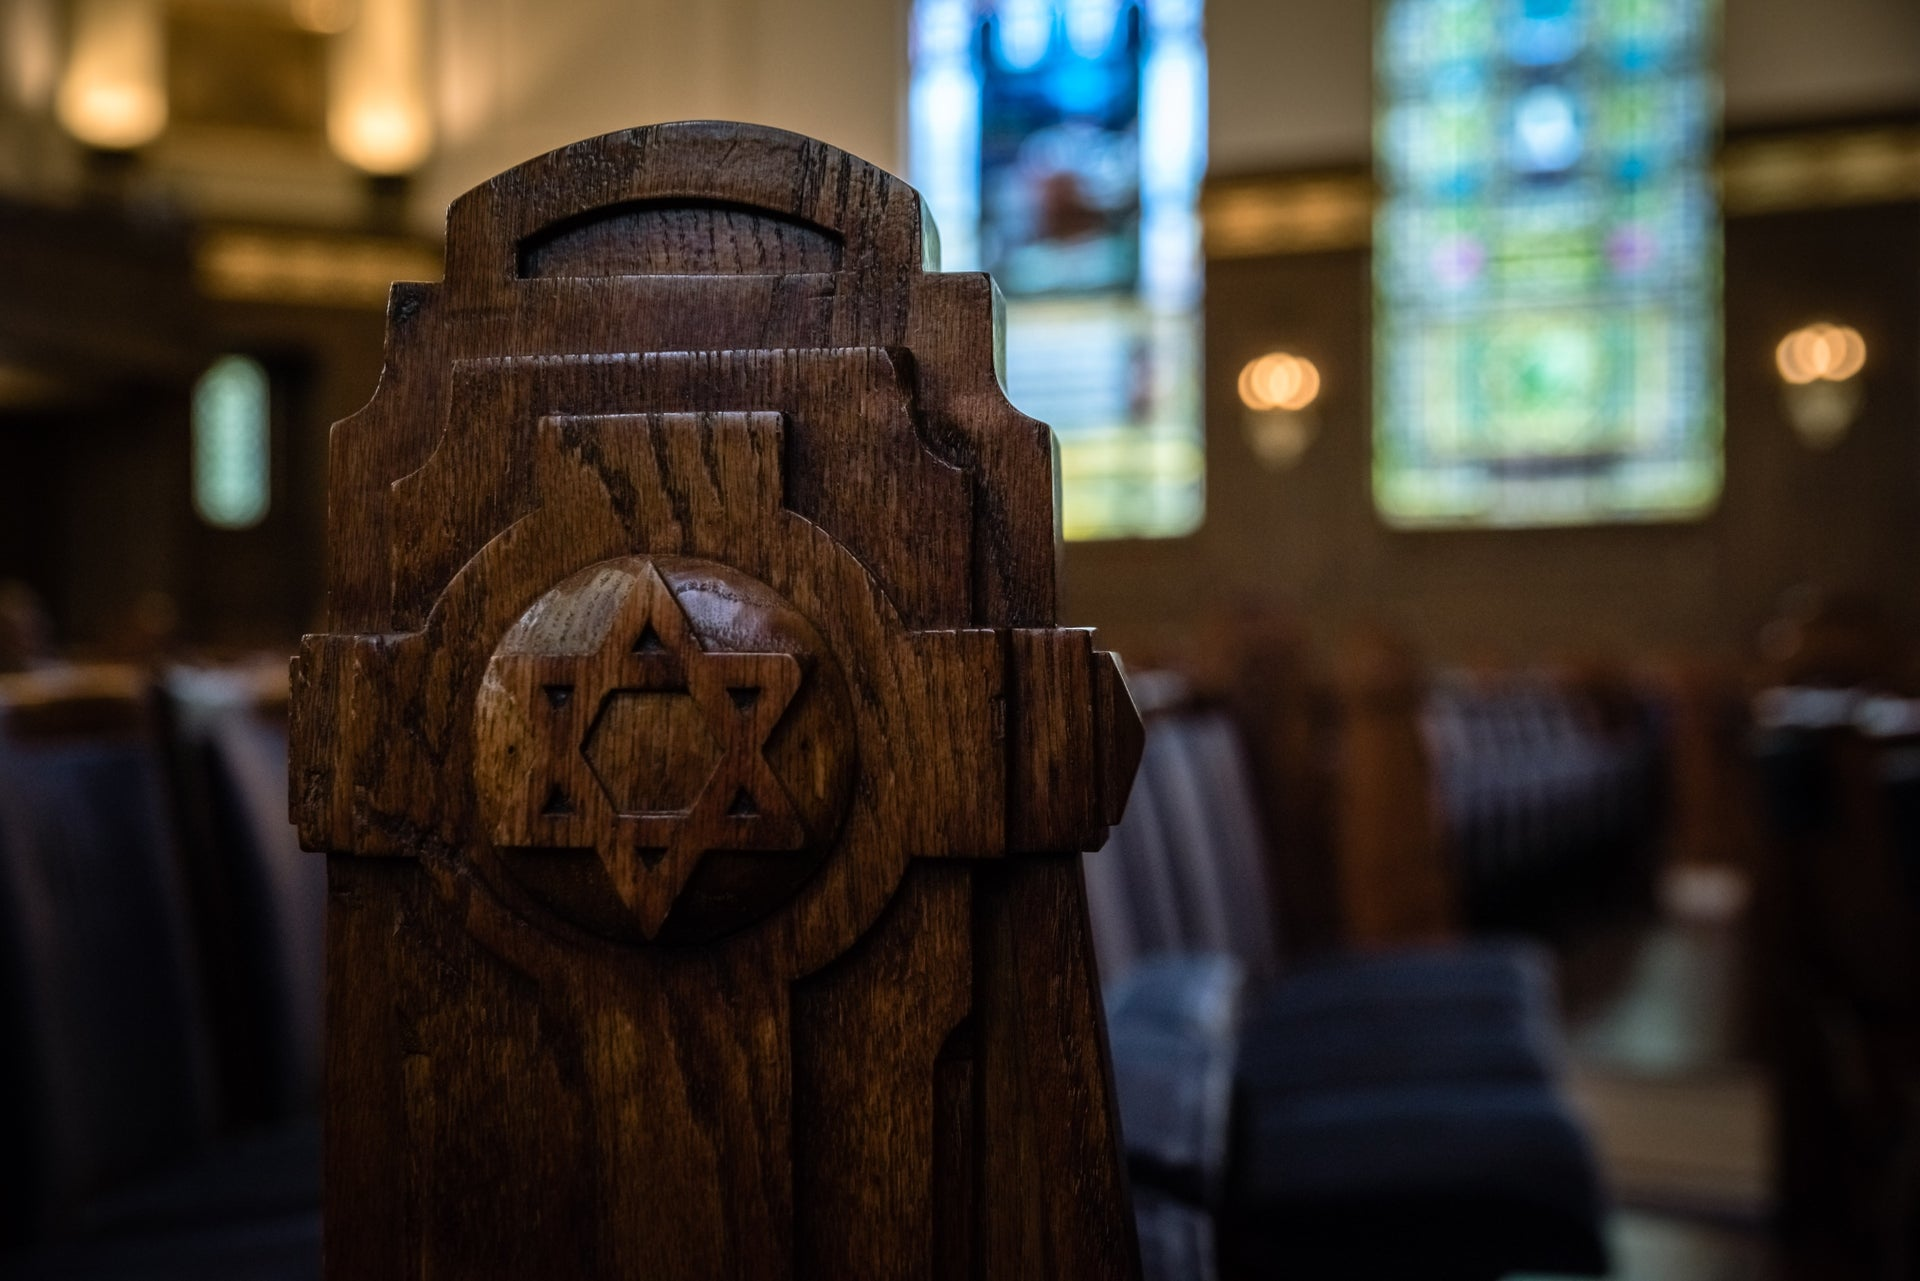 Rodef Shalom Synagogue, Pittsburgh, October 23, 2019